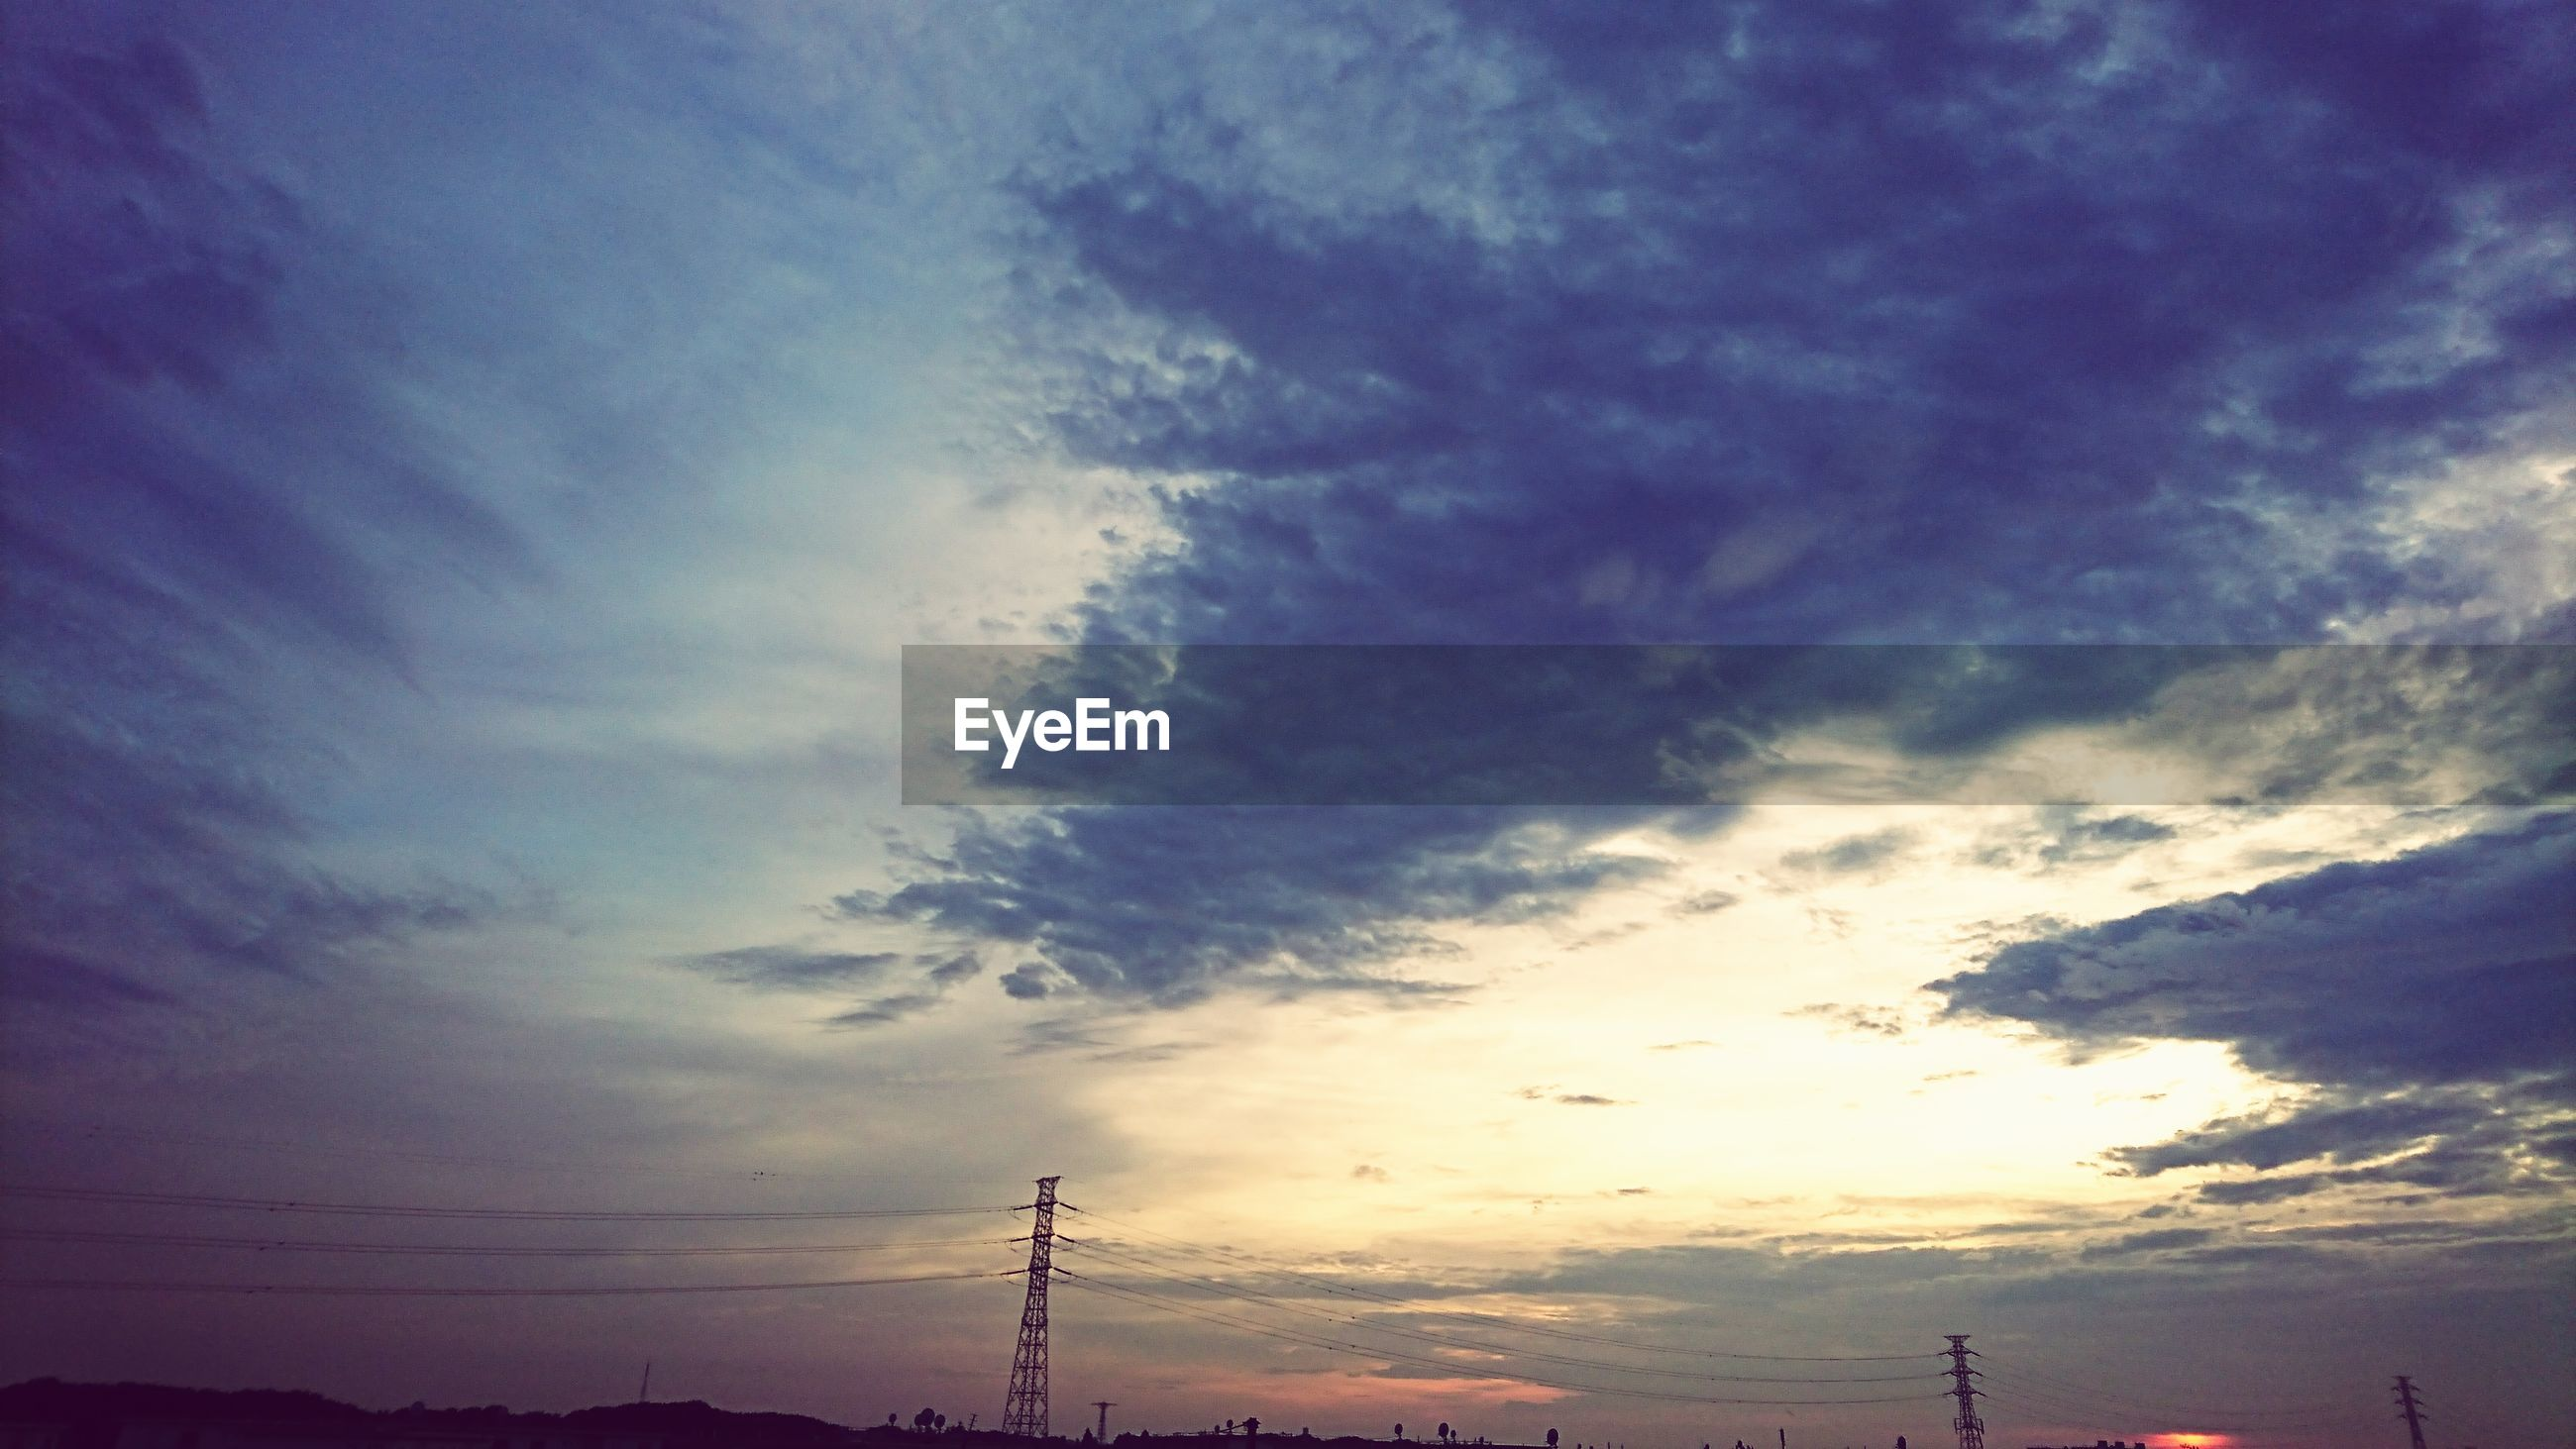 cloud - sky, sky, silhouette, sunset, nature, low angle view, no people, beauty in nature, connection, scenics, tranquility, outdoors, electricity pylon, technology, day